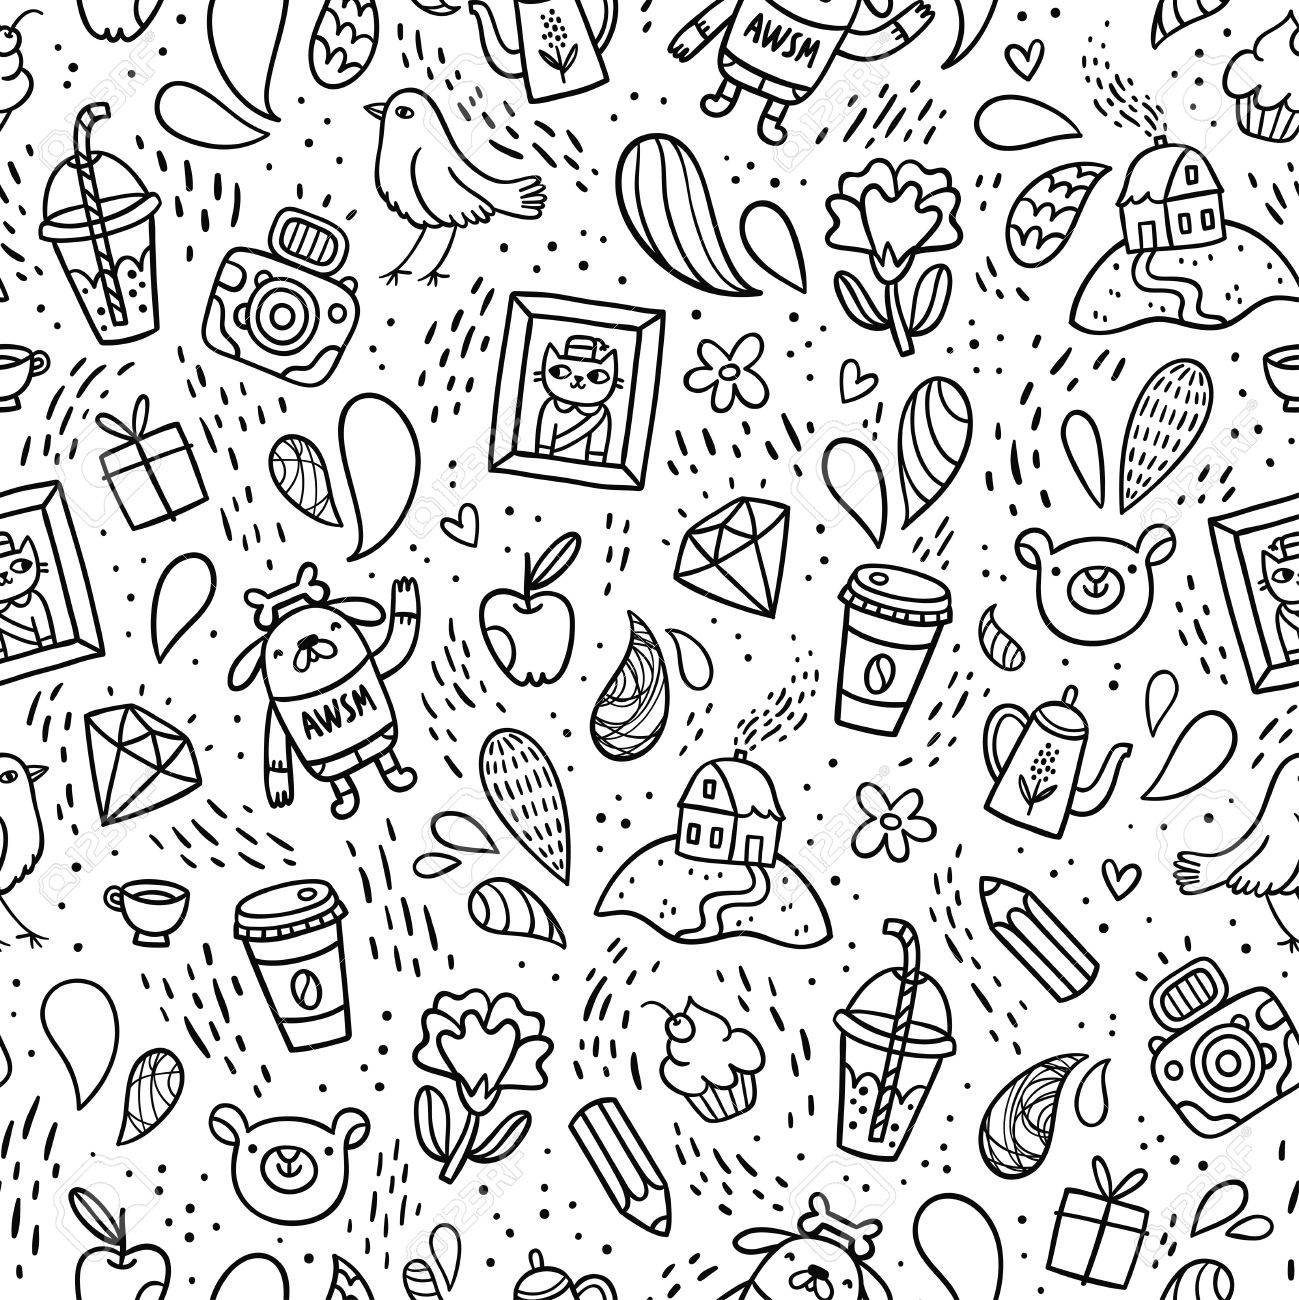 Fun Doodle Things Black And White Seamless Pattern